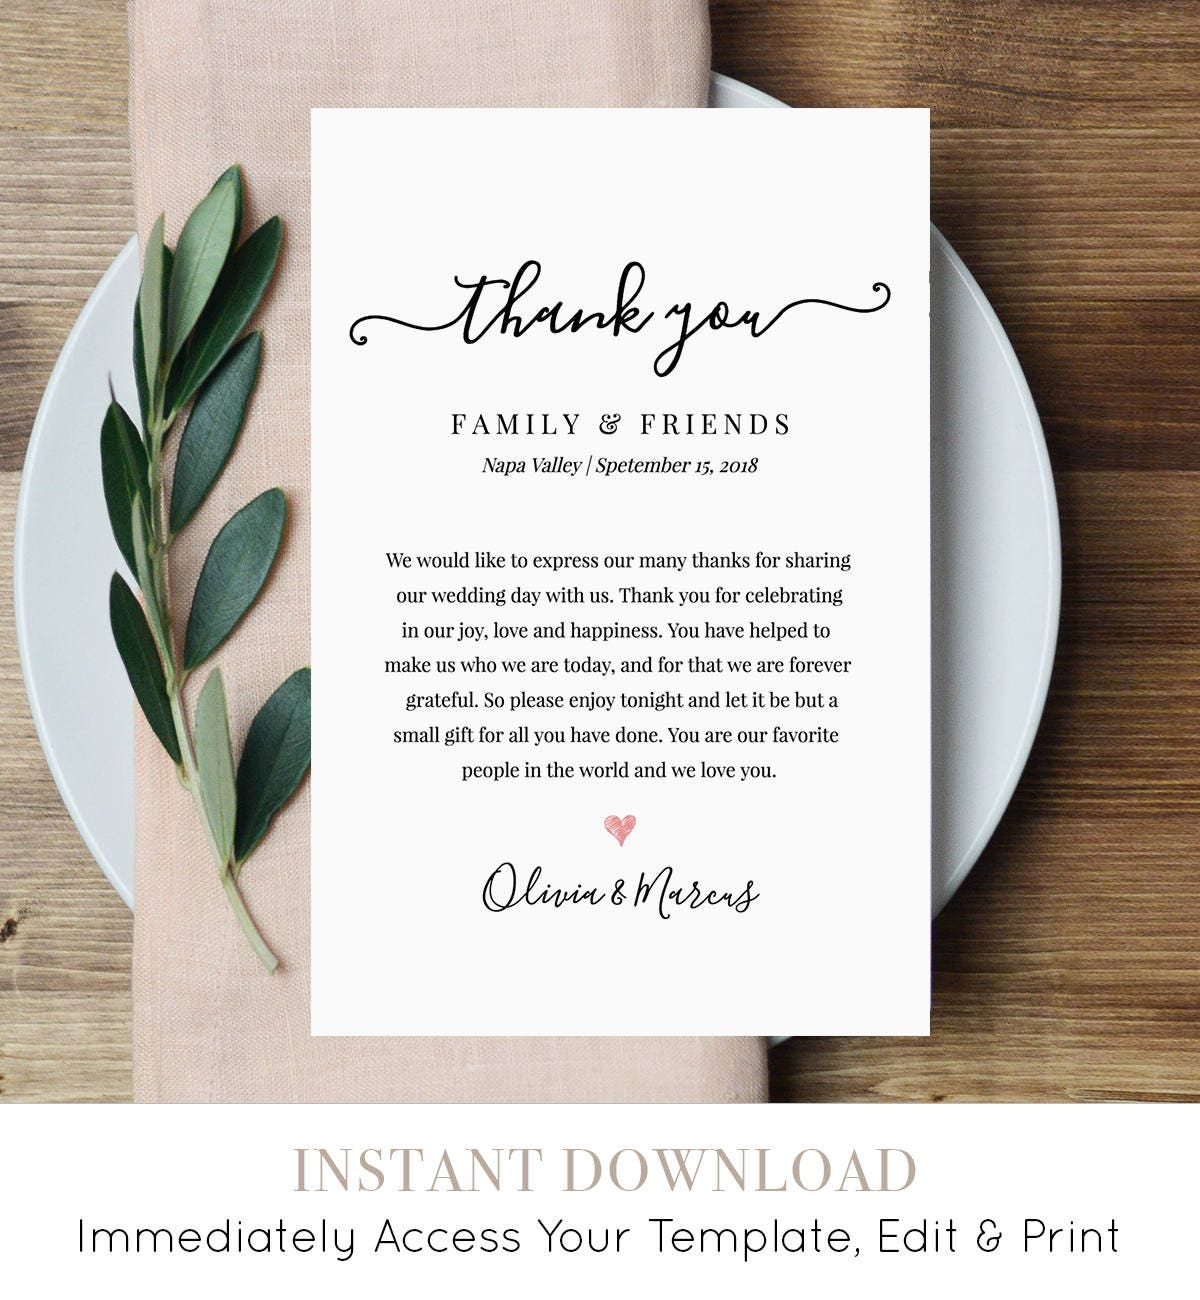 Wedding Thank You Letter, Thank You Note, Printable Wedding In Lieu ...